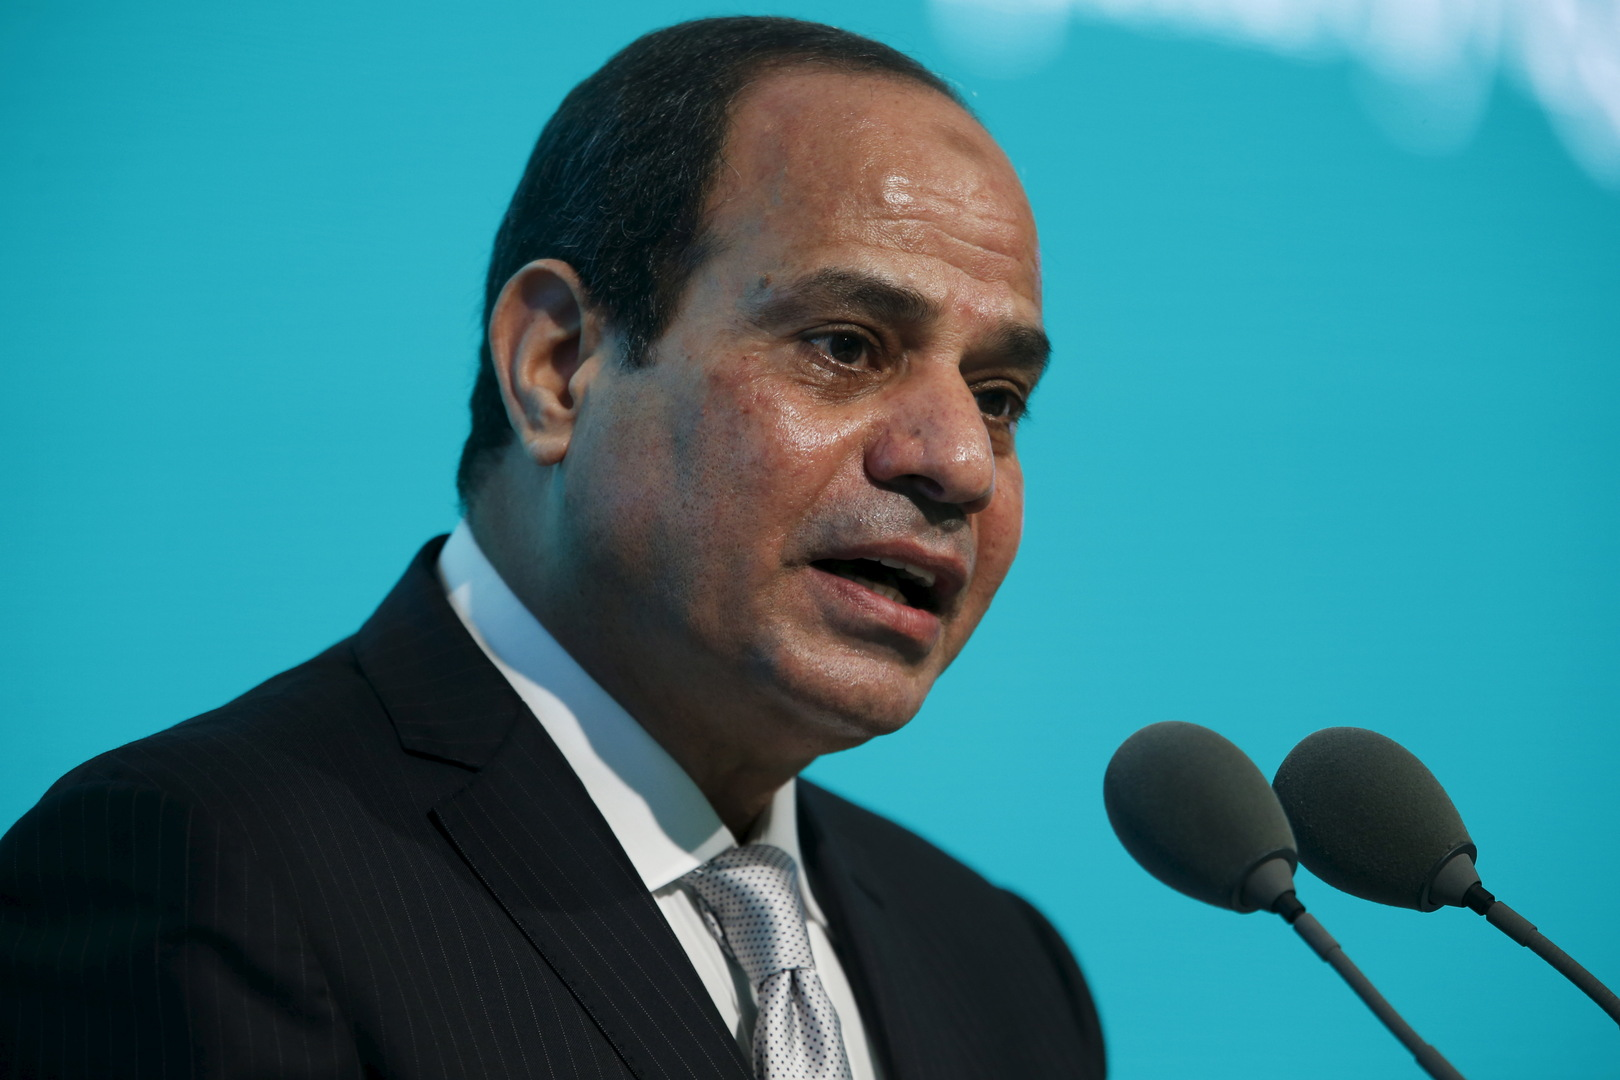 Al-Sisi: The revolution that took place on January 25, 2011 is not over yet